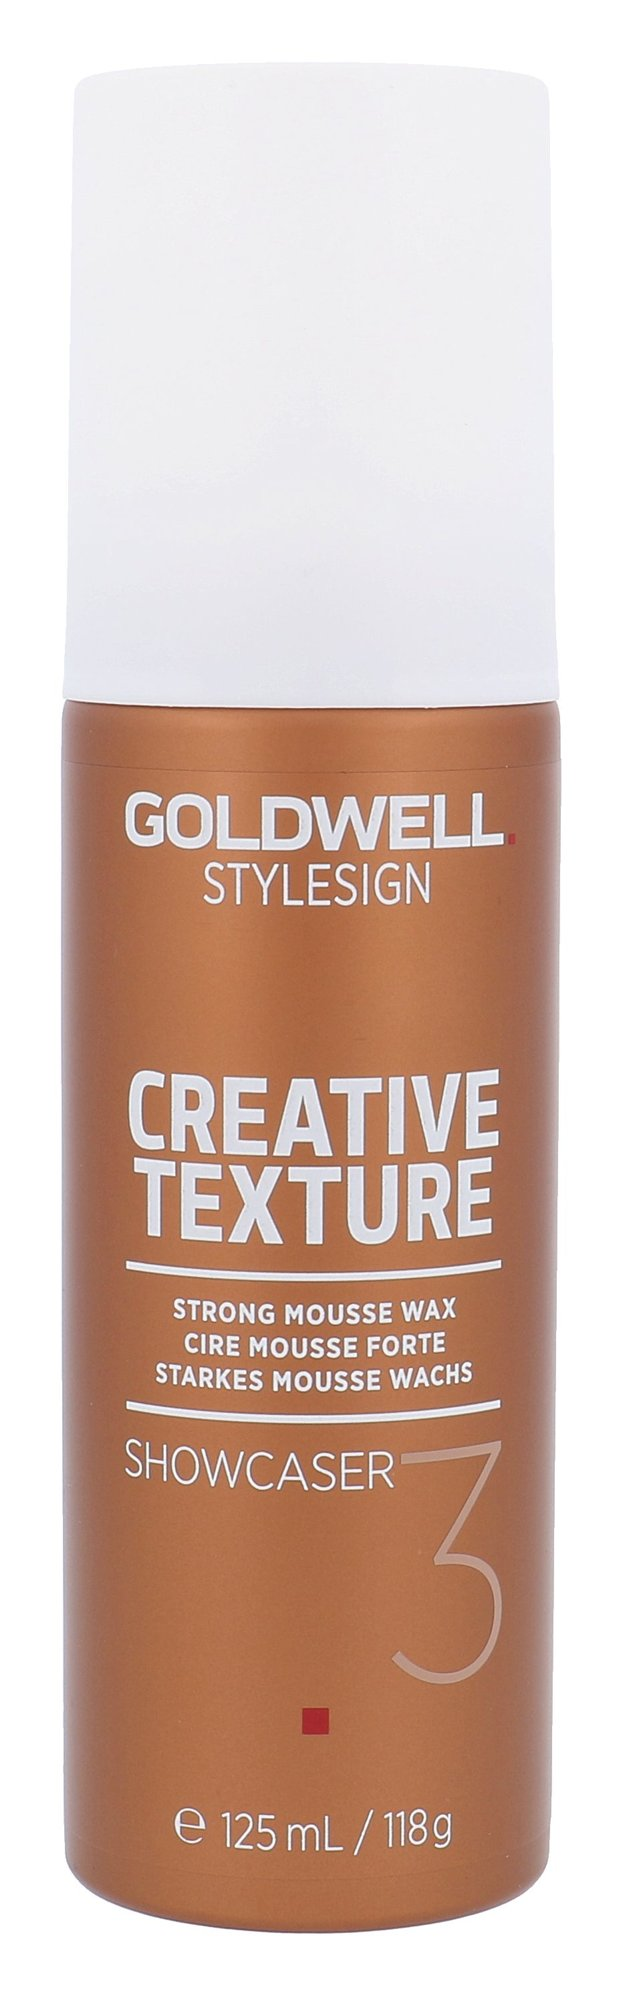 Goldwell Style Sign Cosmetic 125ml  Creative Texture